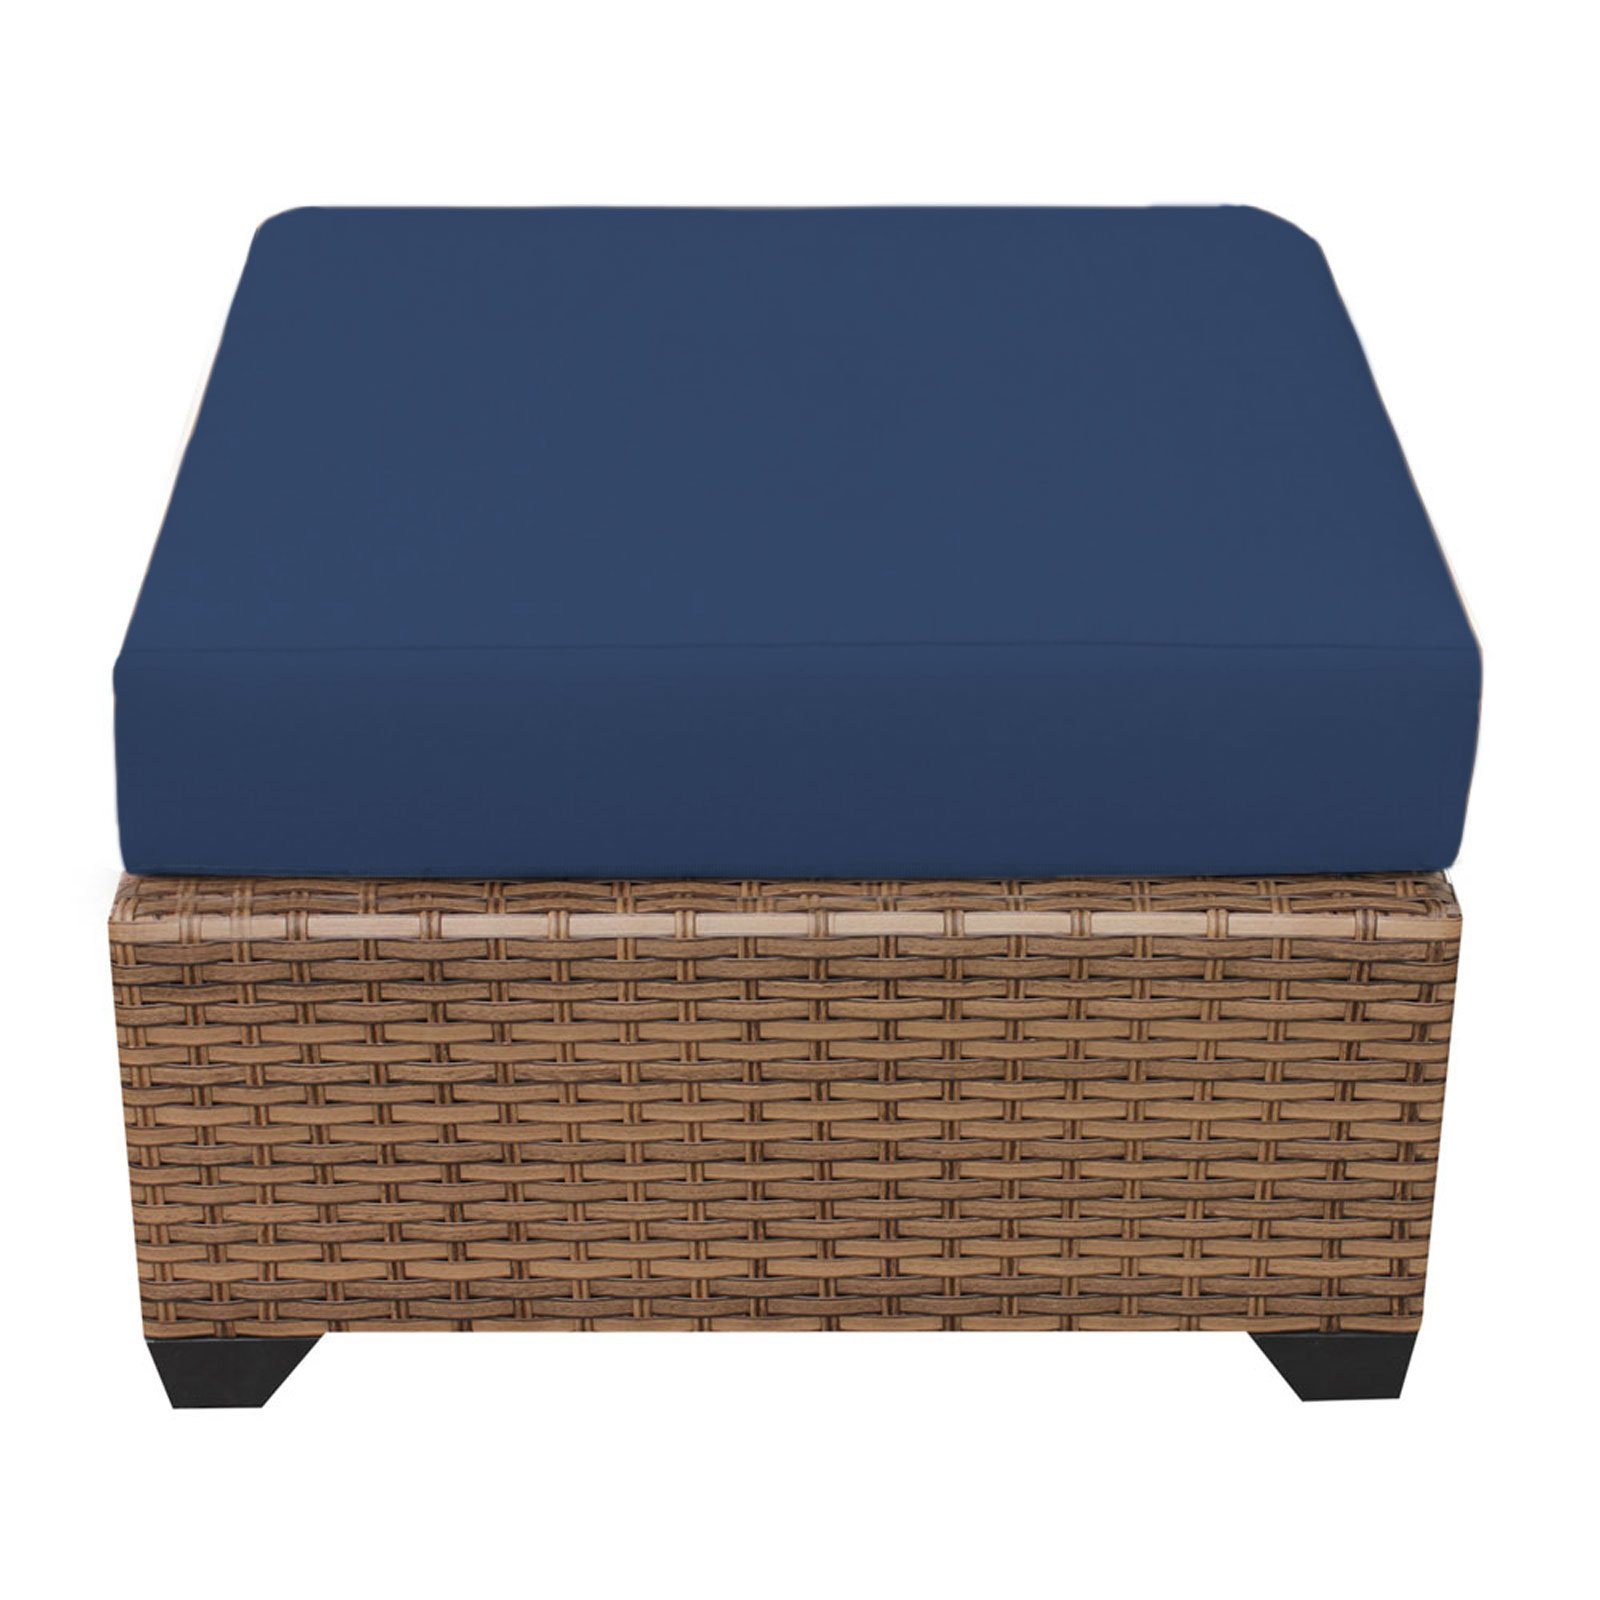 Avadi Outdoor Sofas & Ottomans 3 Piece Set Intended For Fashionable Waterbury Ottoman With Cushion (Gallery 14 of 25)